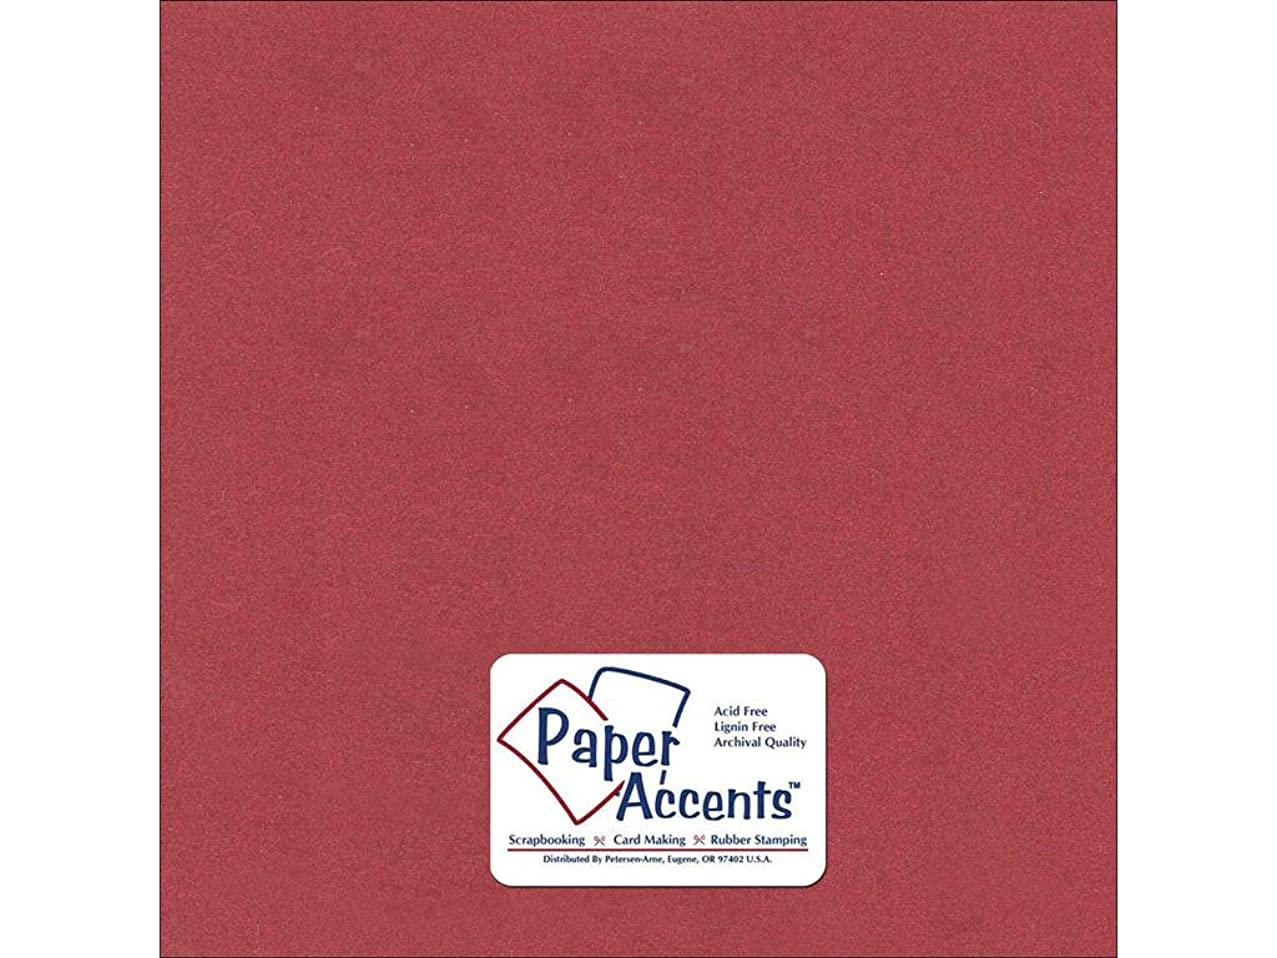 Accent Design Paper Accents Pearlized12x12Marsala Pearlized Marsala